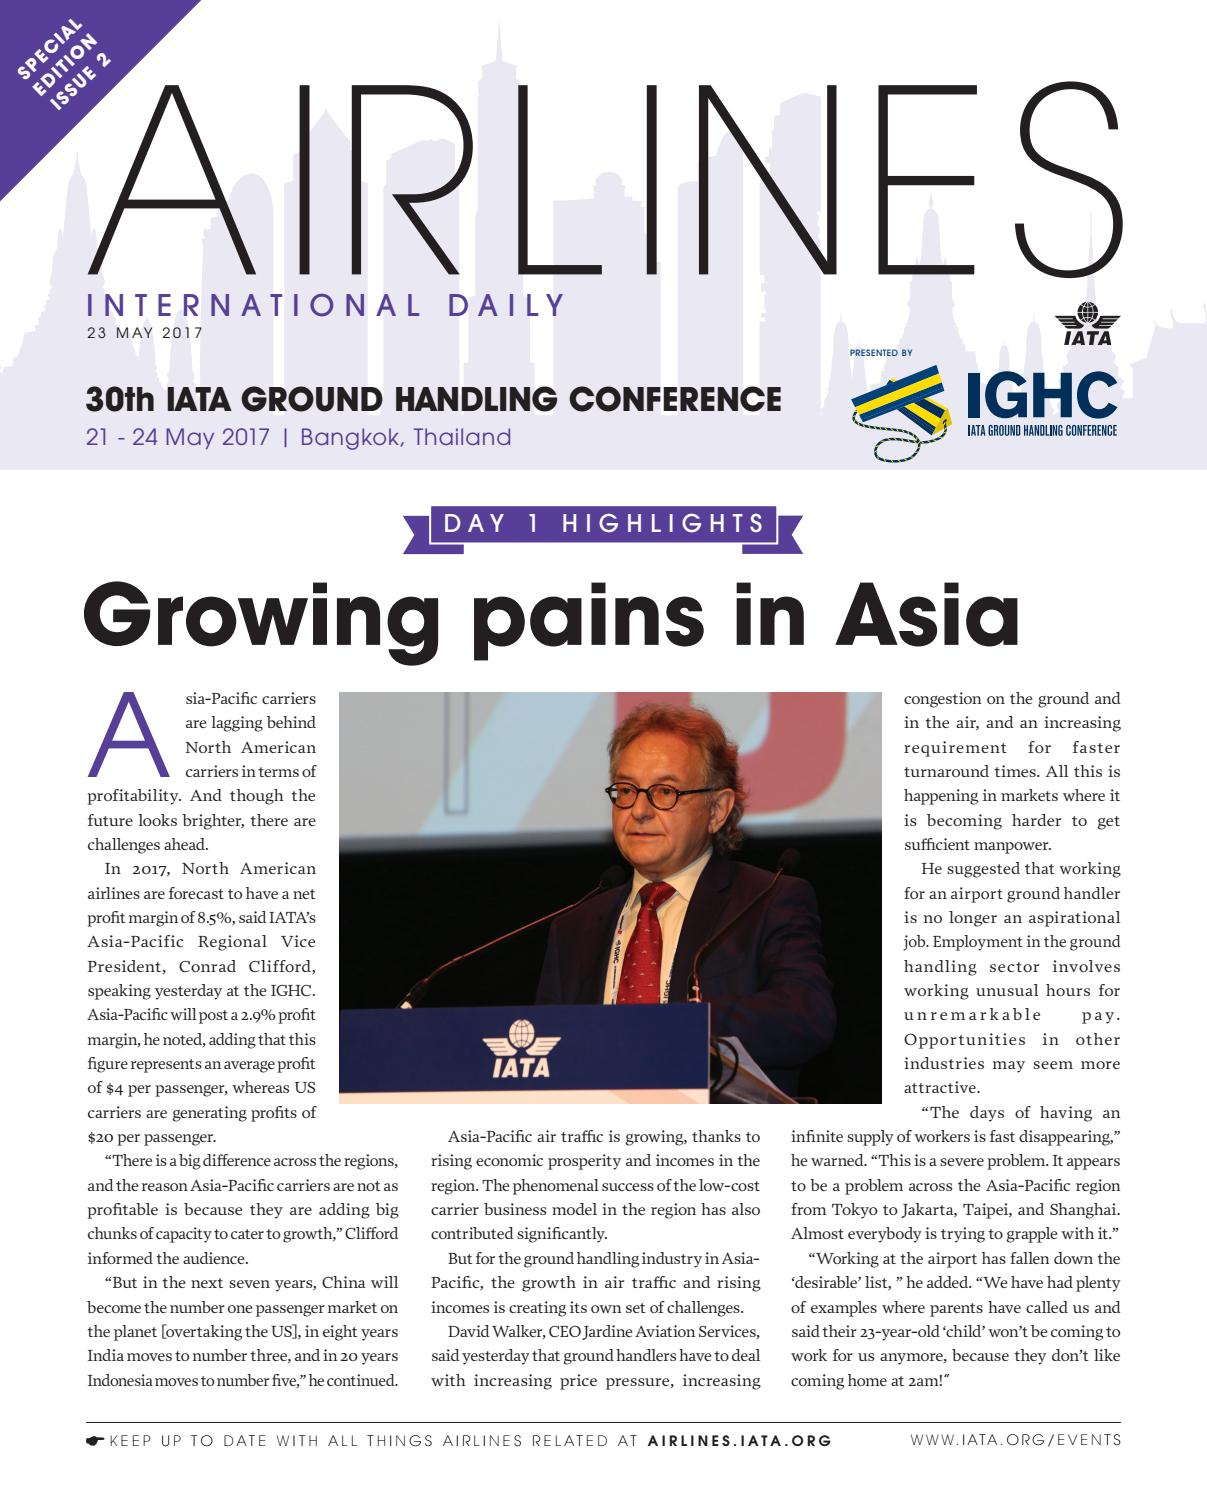 IATA Ground Handling Conference 23 May 2017 by Redactive Media Group - issuu